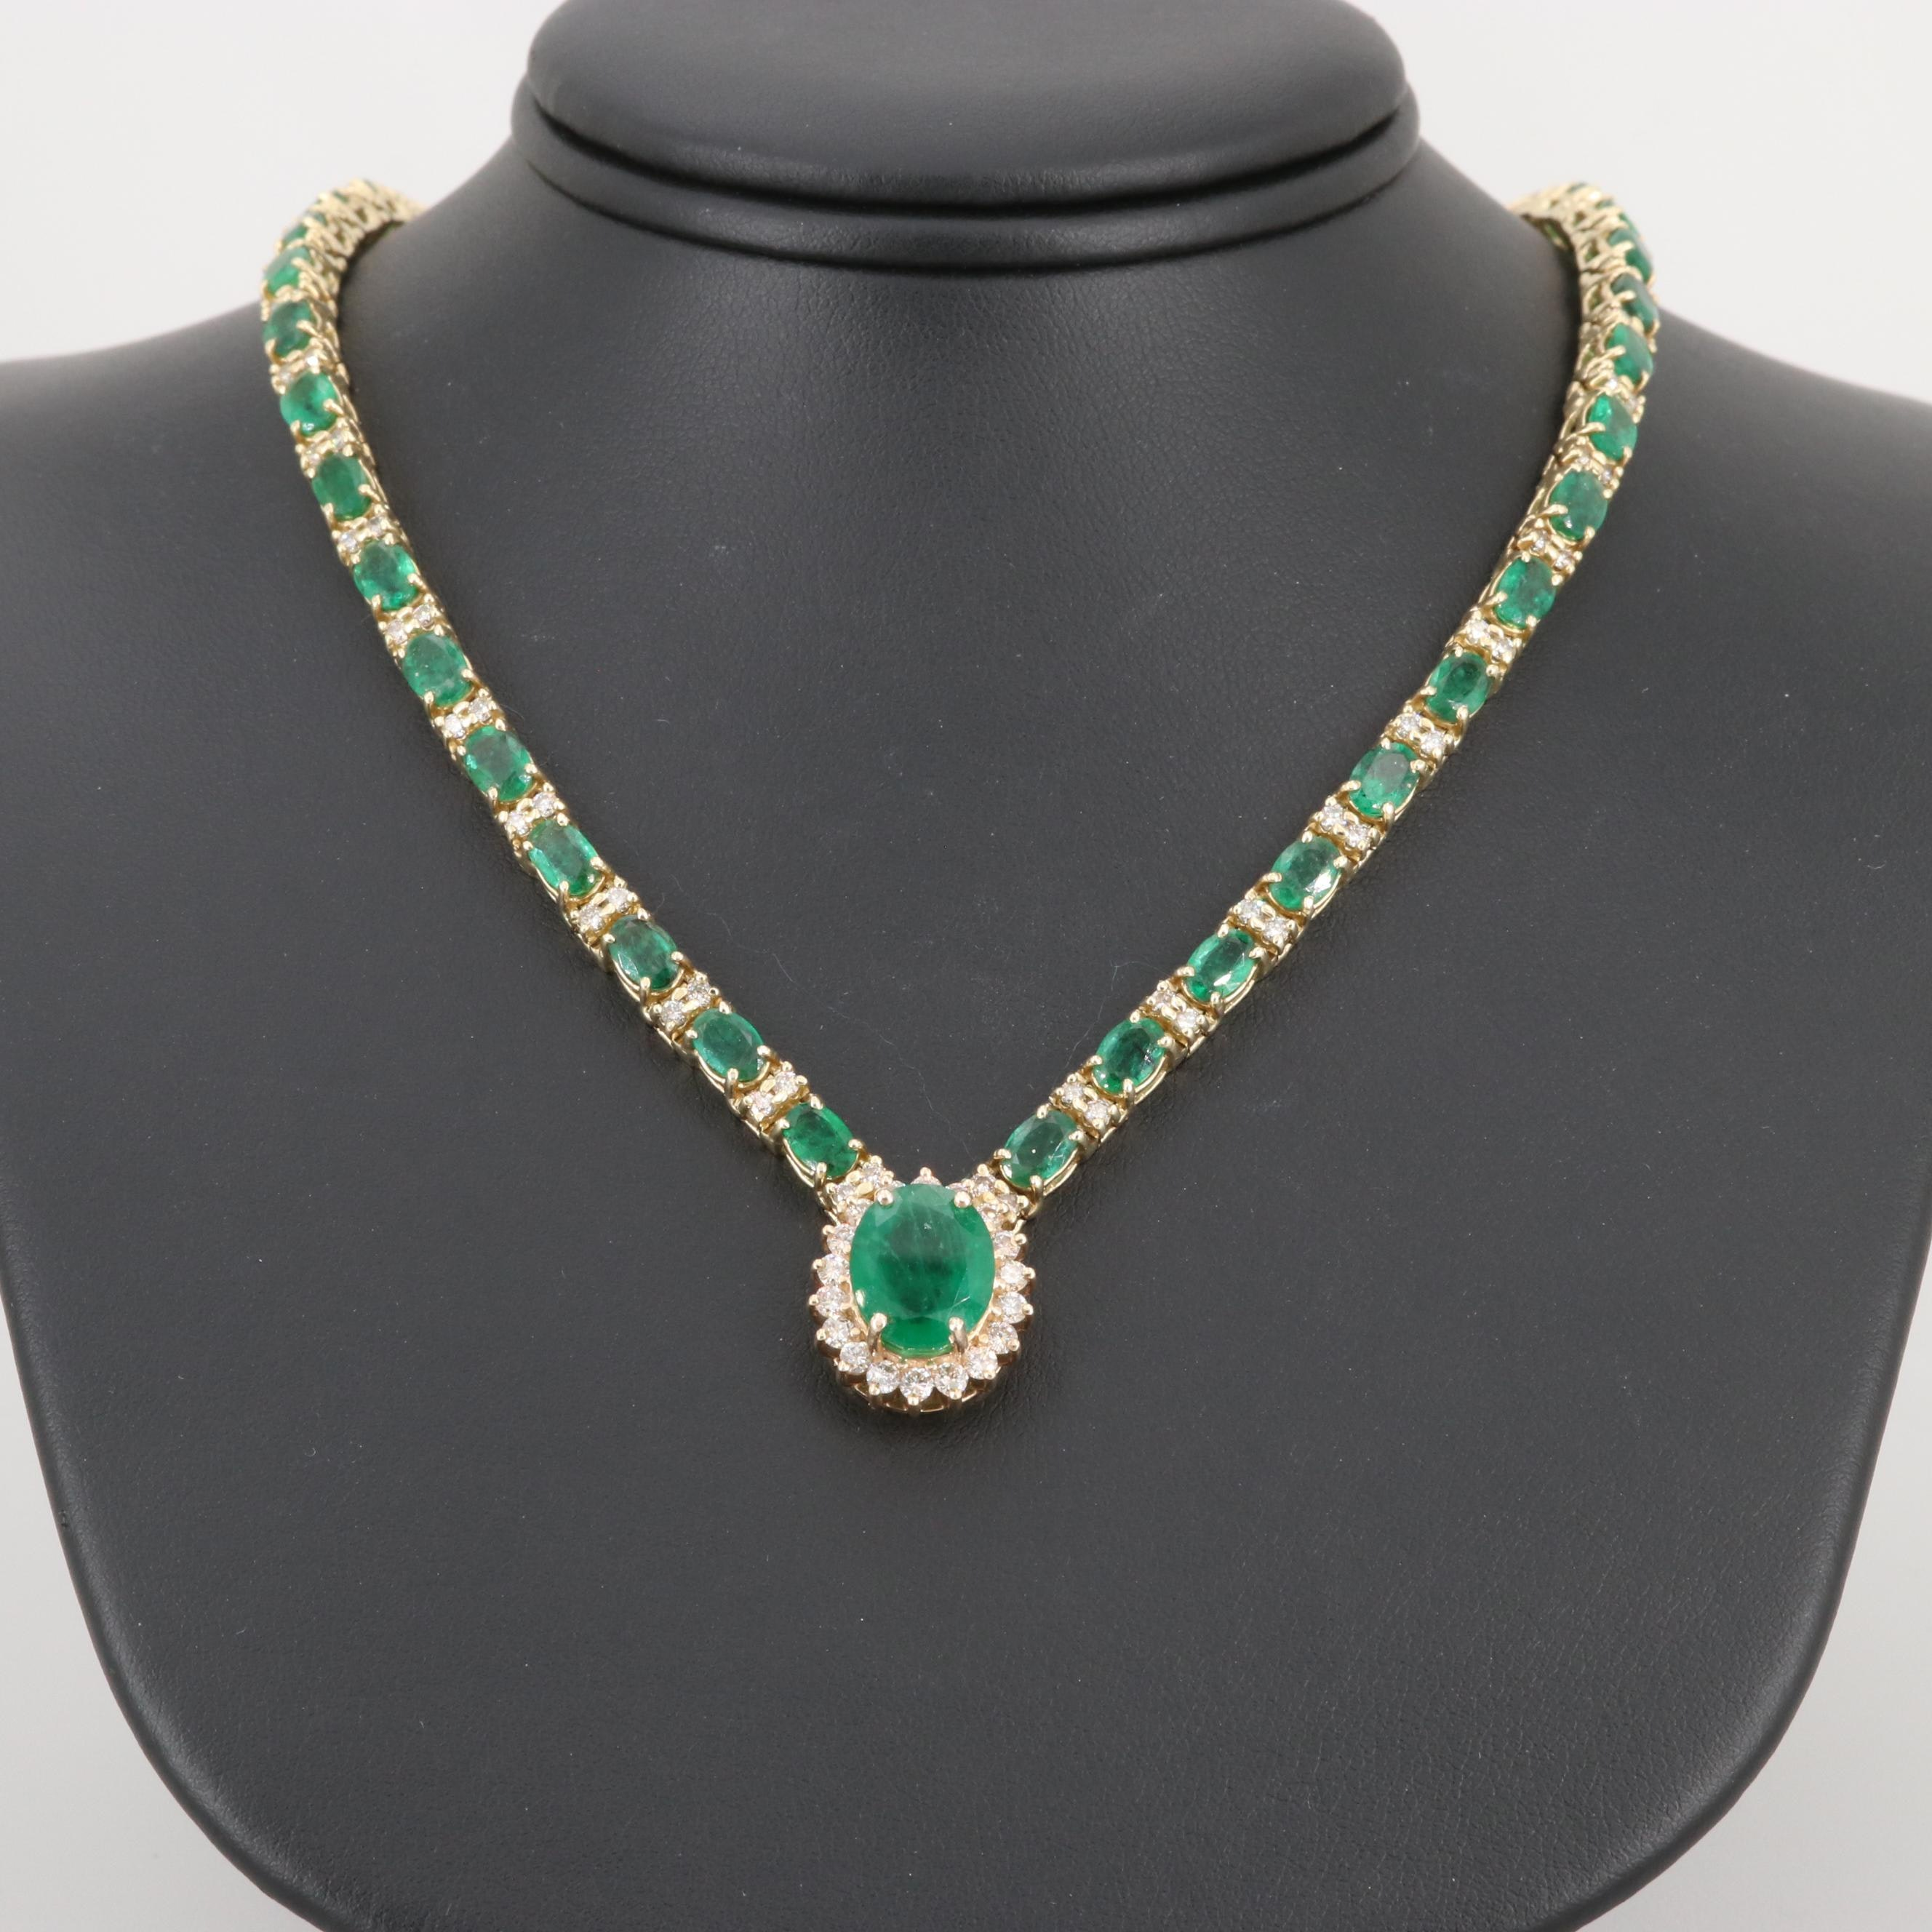 14K Yellow Gold 20.00 CTW Emerald and 3.07 CTW Diamond Necklace